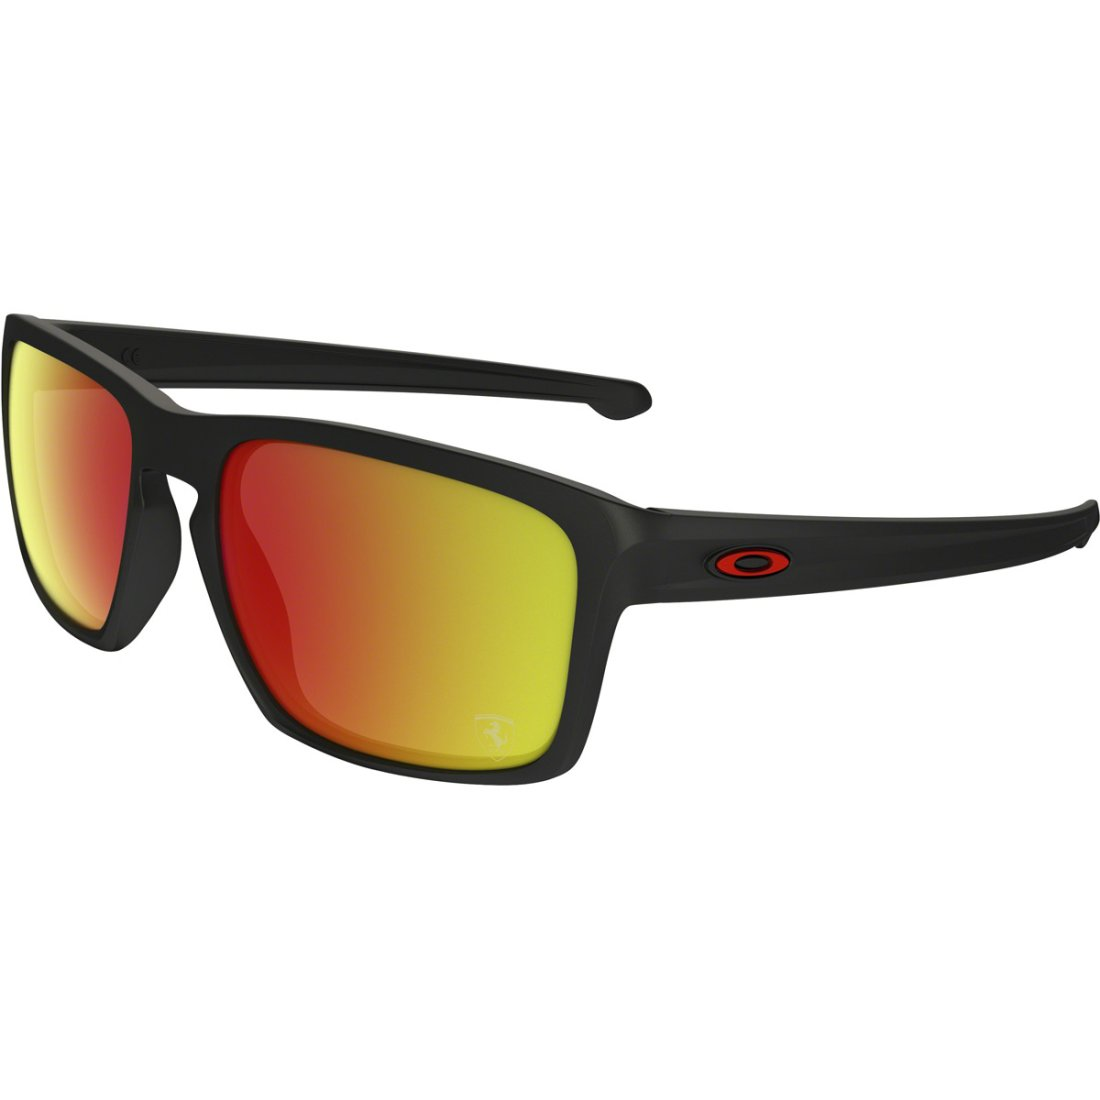 Masque Iridium Black Collection Oakley Matte Sliver Scuderia Lunettes Ruby Ferrari BedxCor